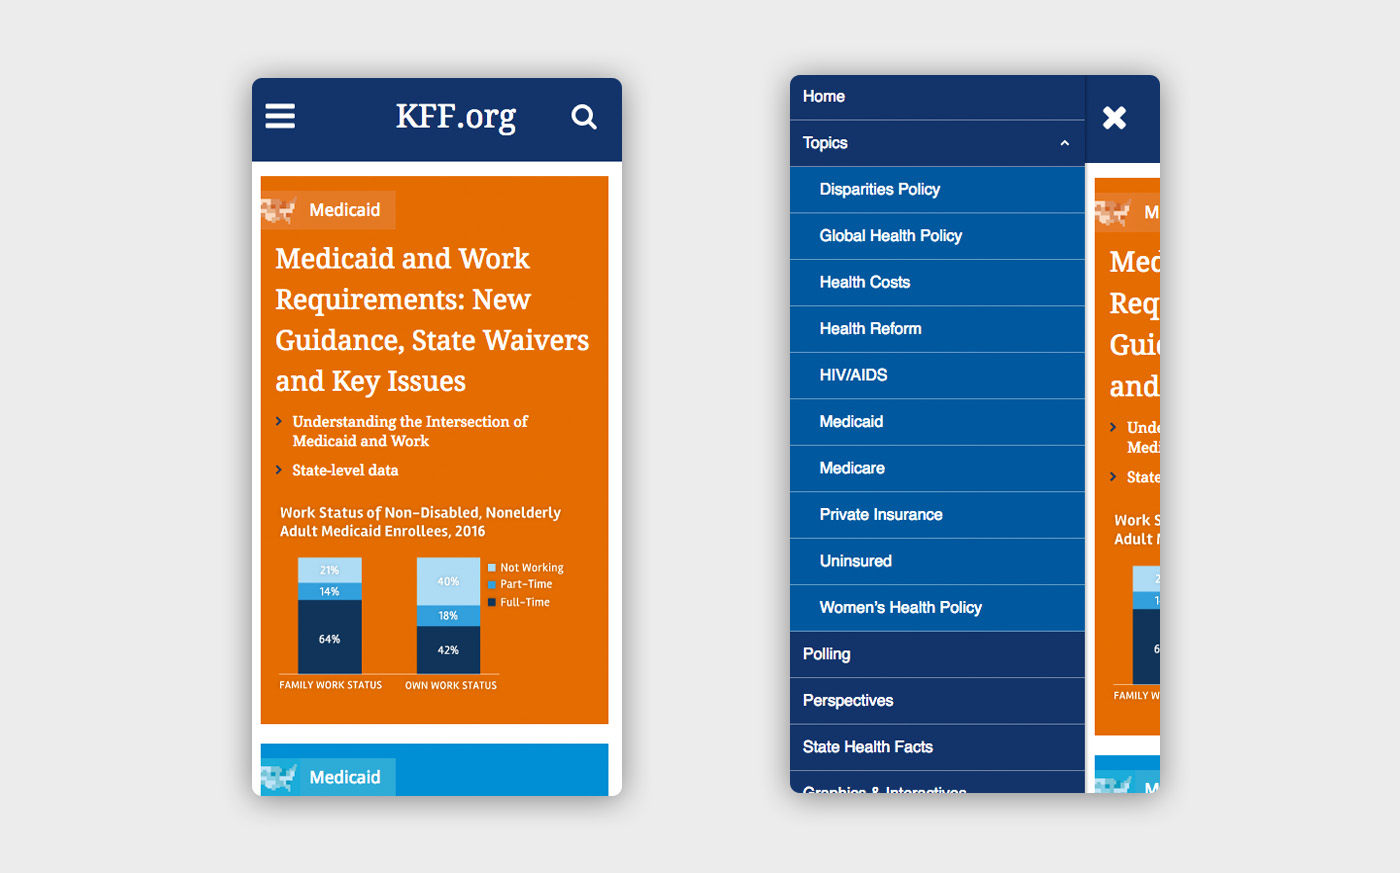 Two views of the mobile site, one displaying the presentation of the home page with a large orange block housing an article, and the other showing the navigation menu with multiple topics in white text on blue